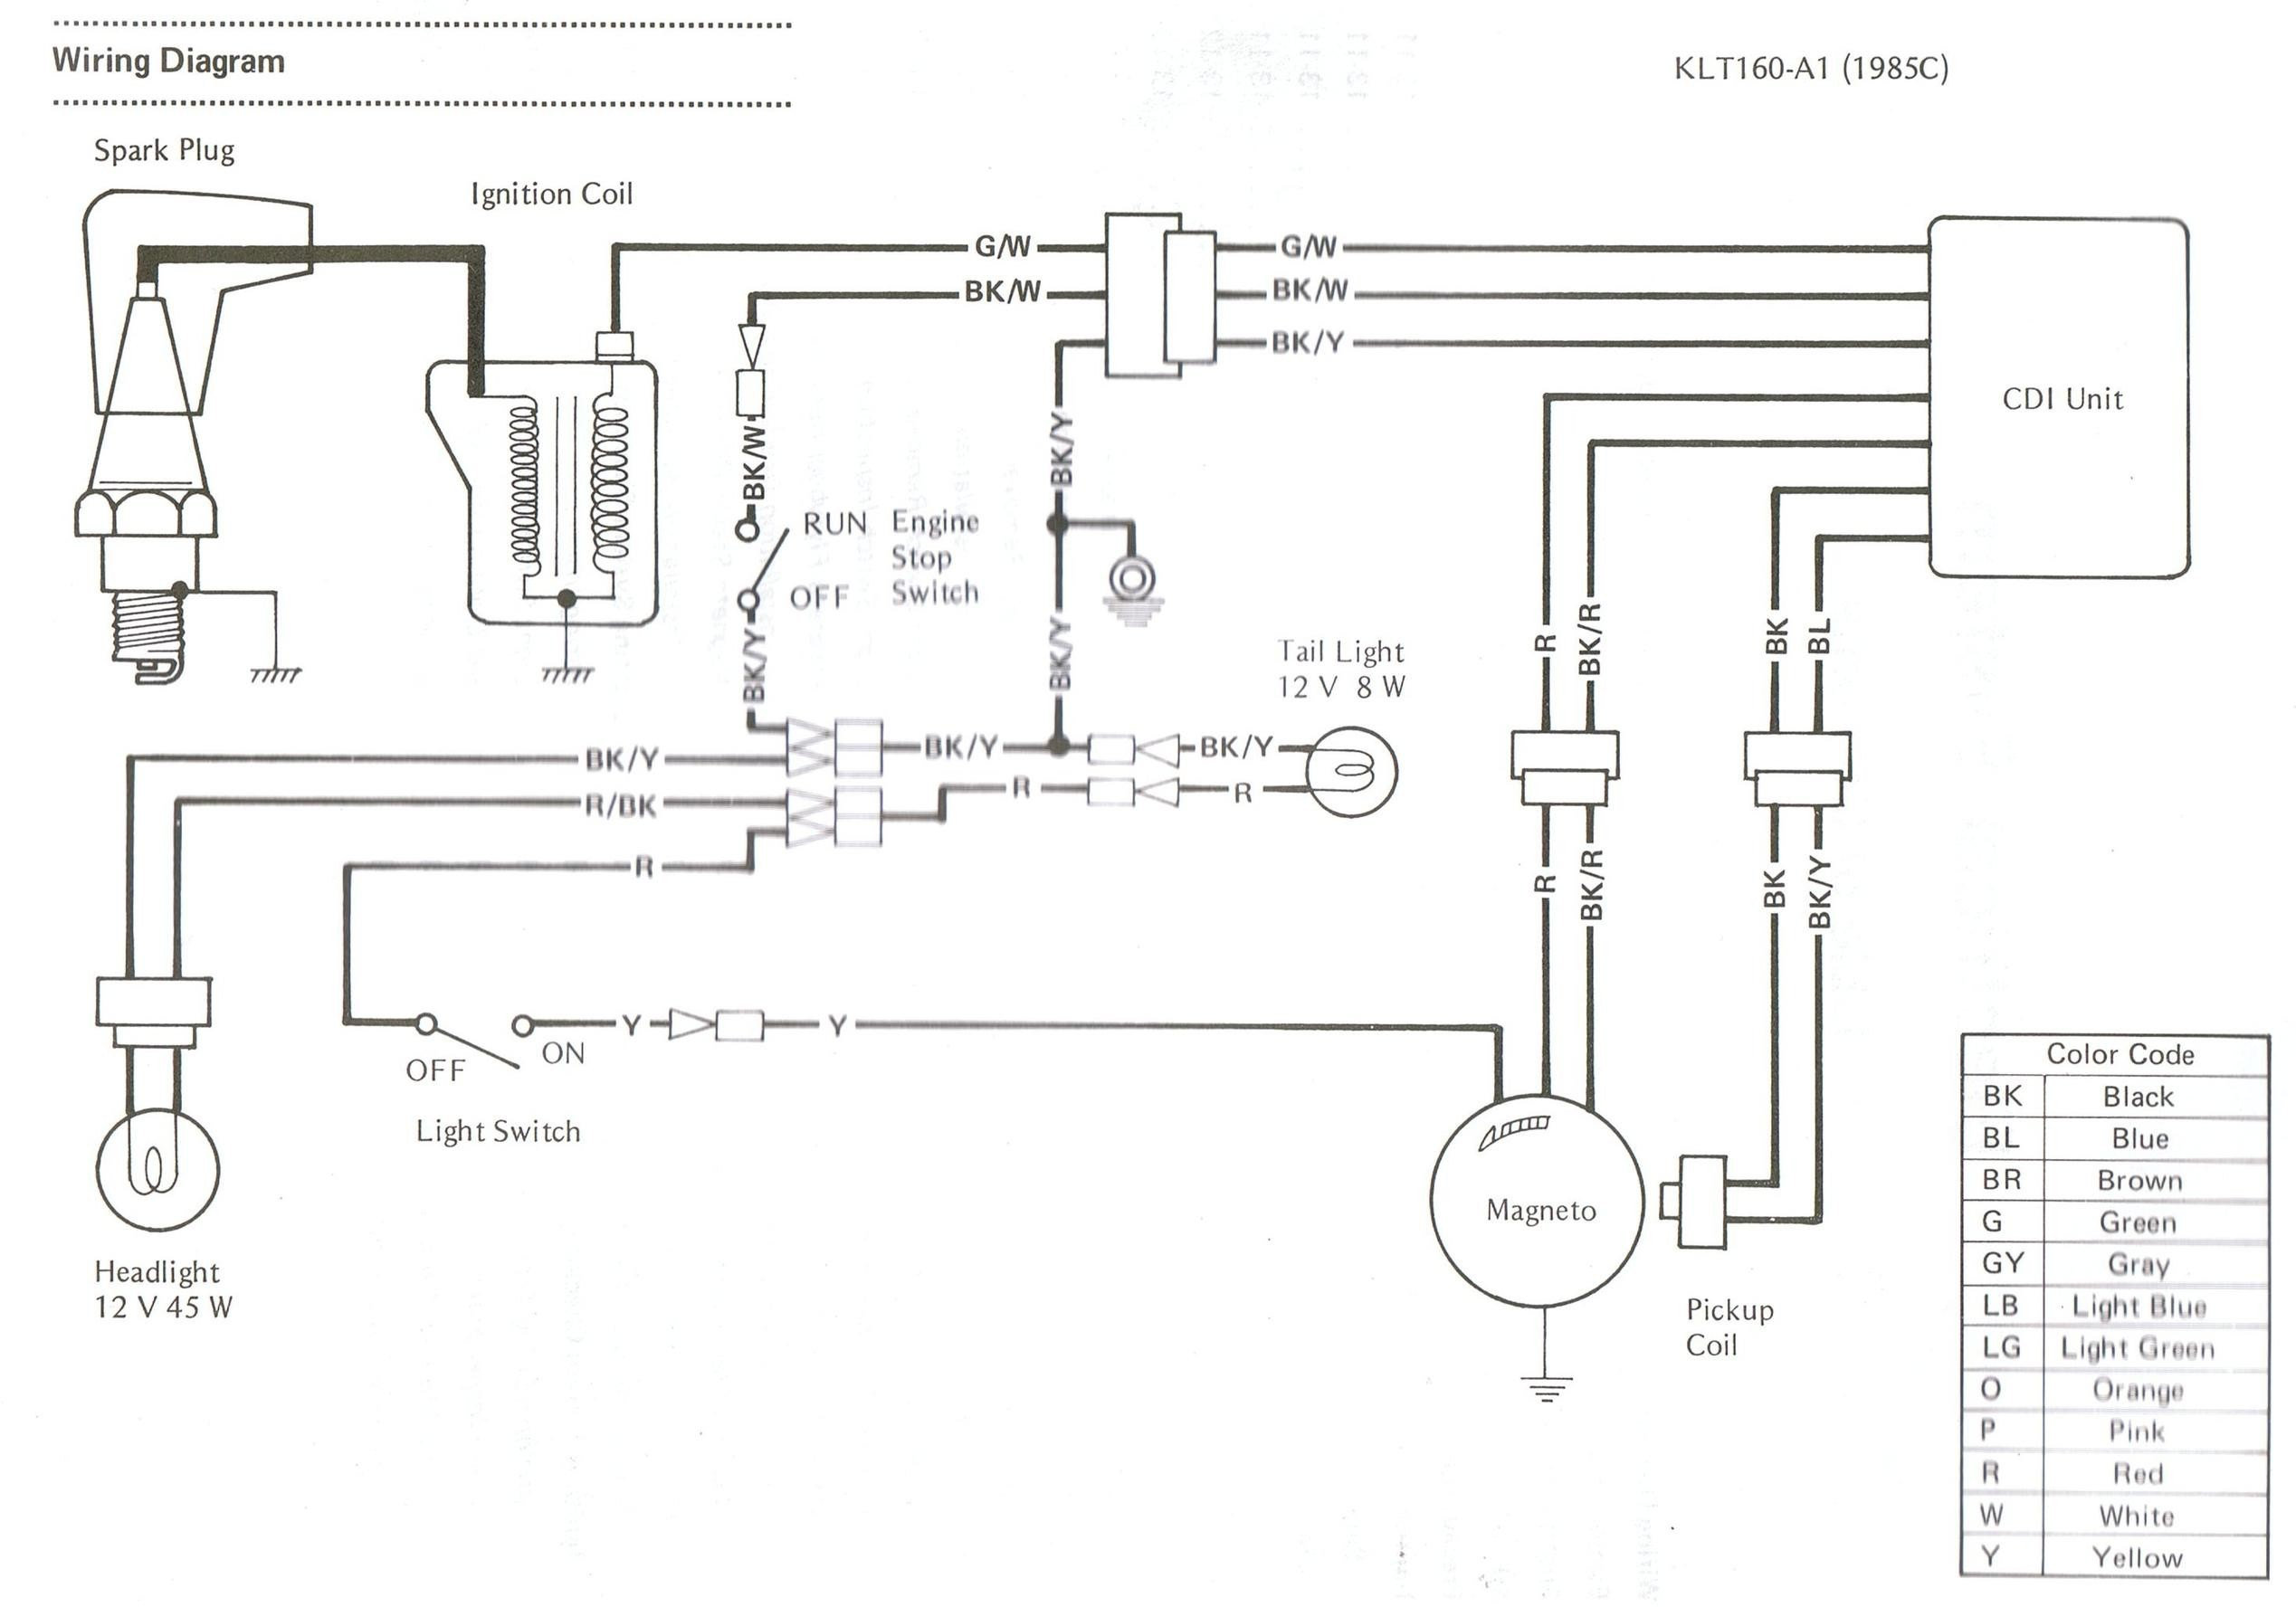 hight resolution of predator engine diagram 212cc engine pull start fix youtube hight resolution of 03 polaris predator 500